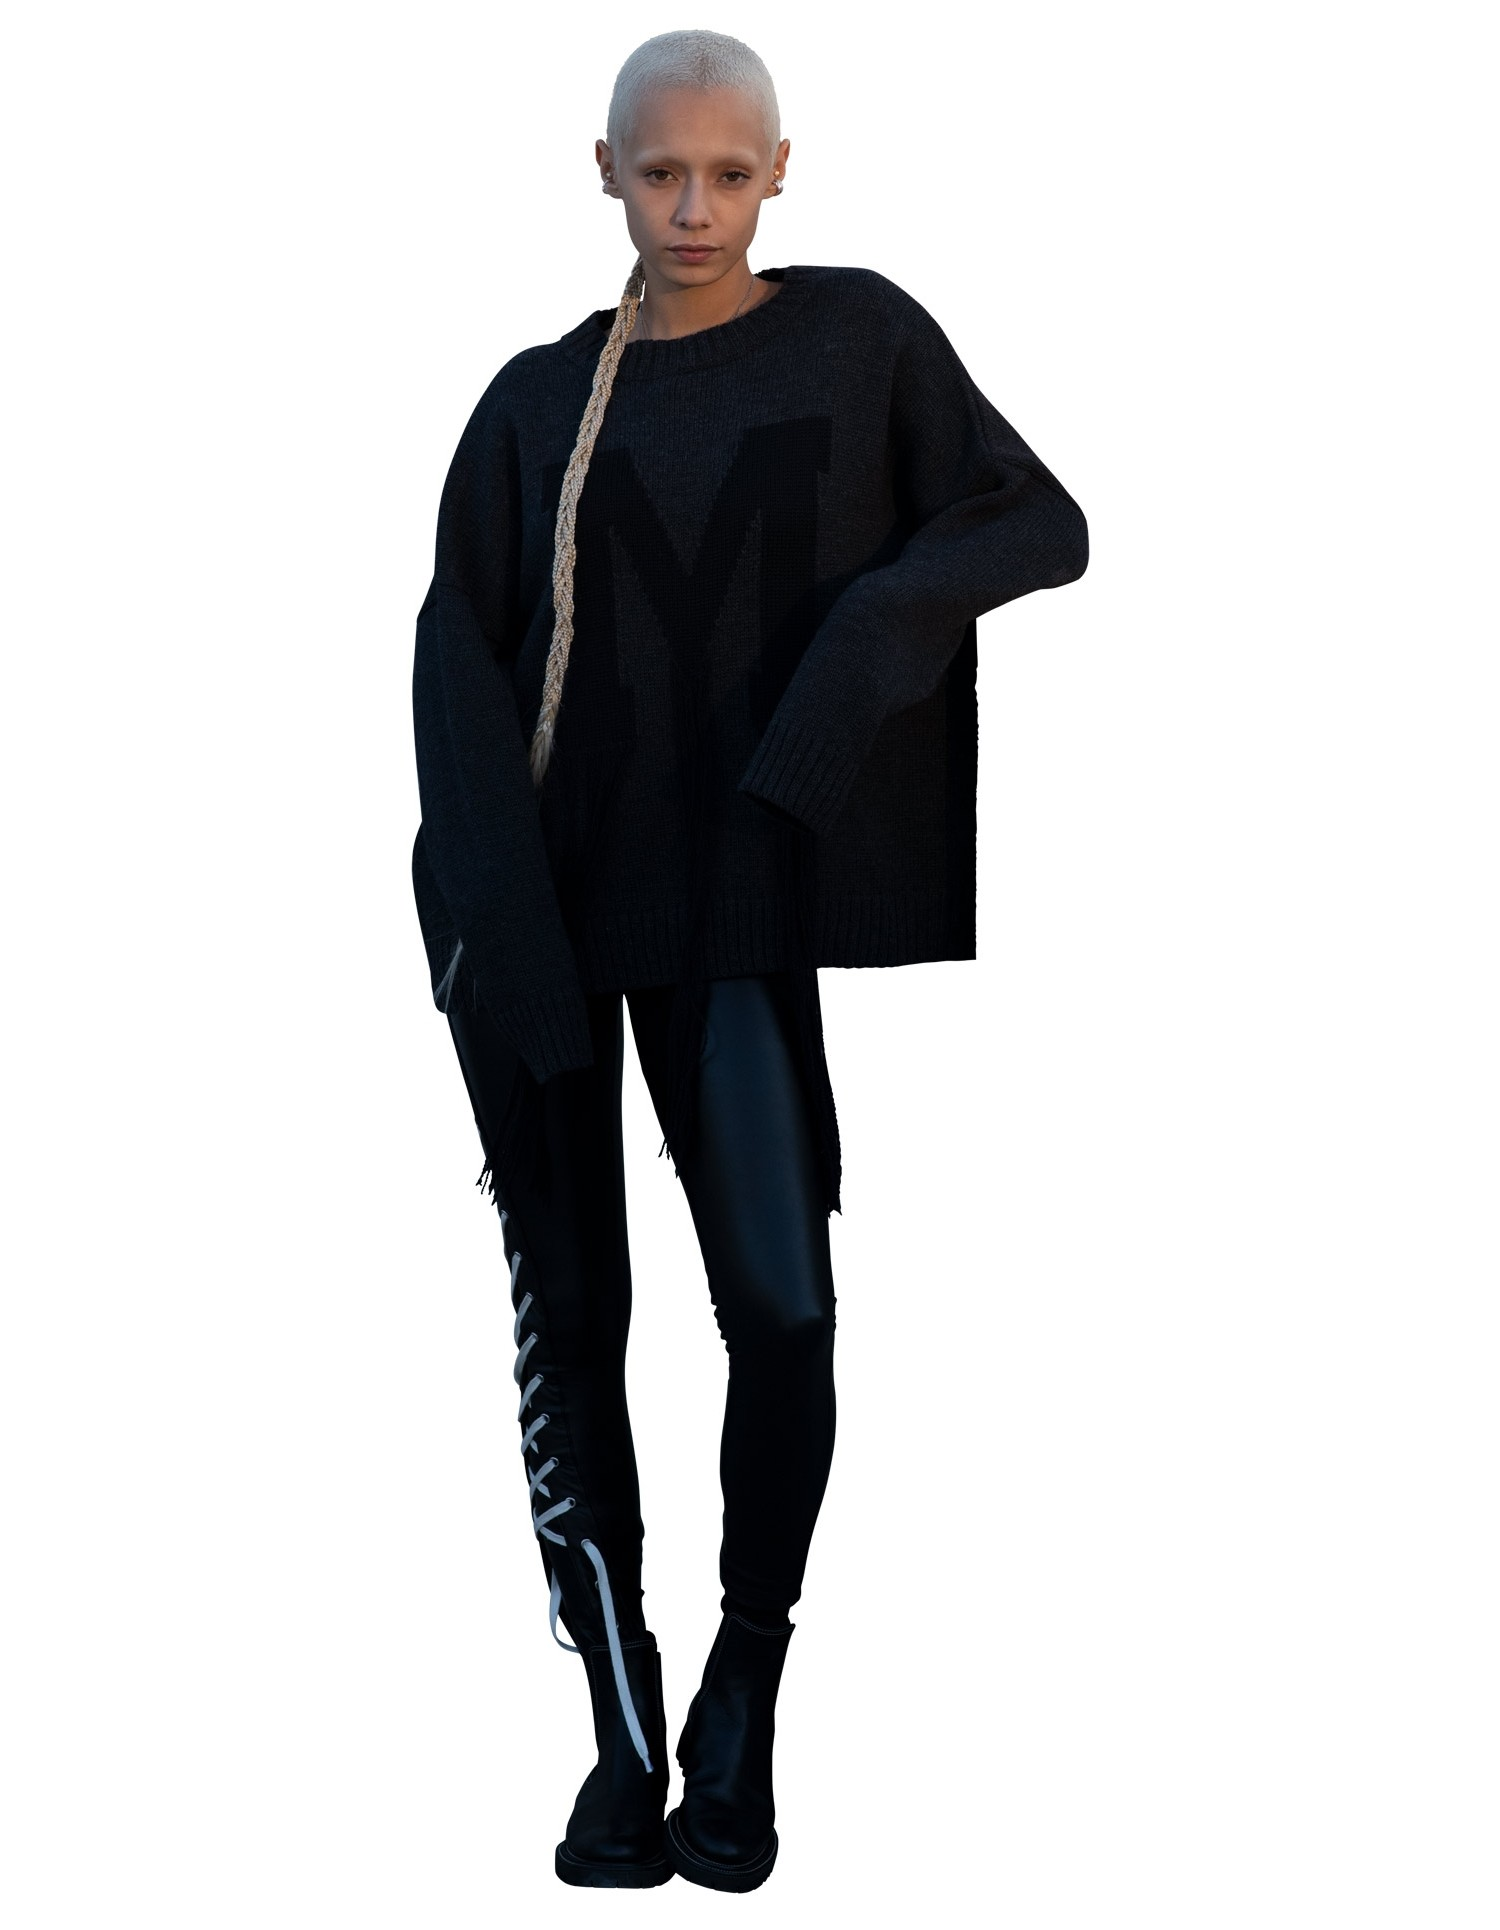 MONSE Fringe M Sweater in Charcoal and Black on Model Full Front View